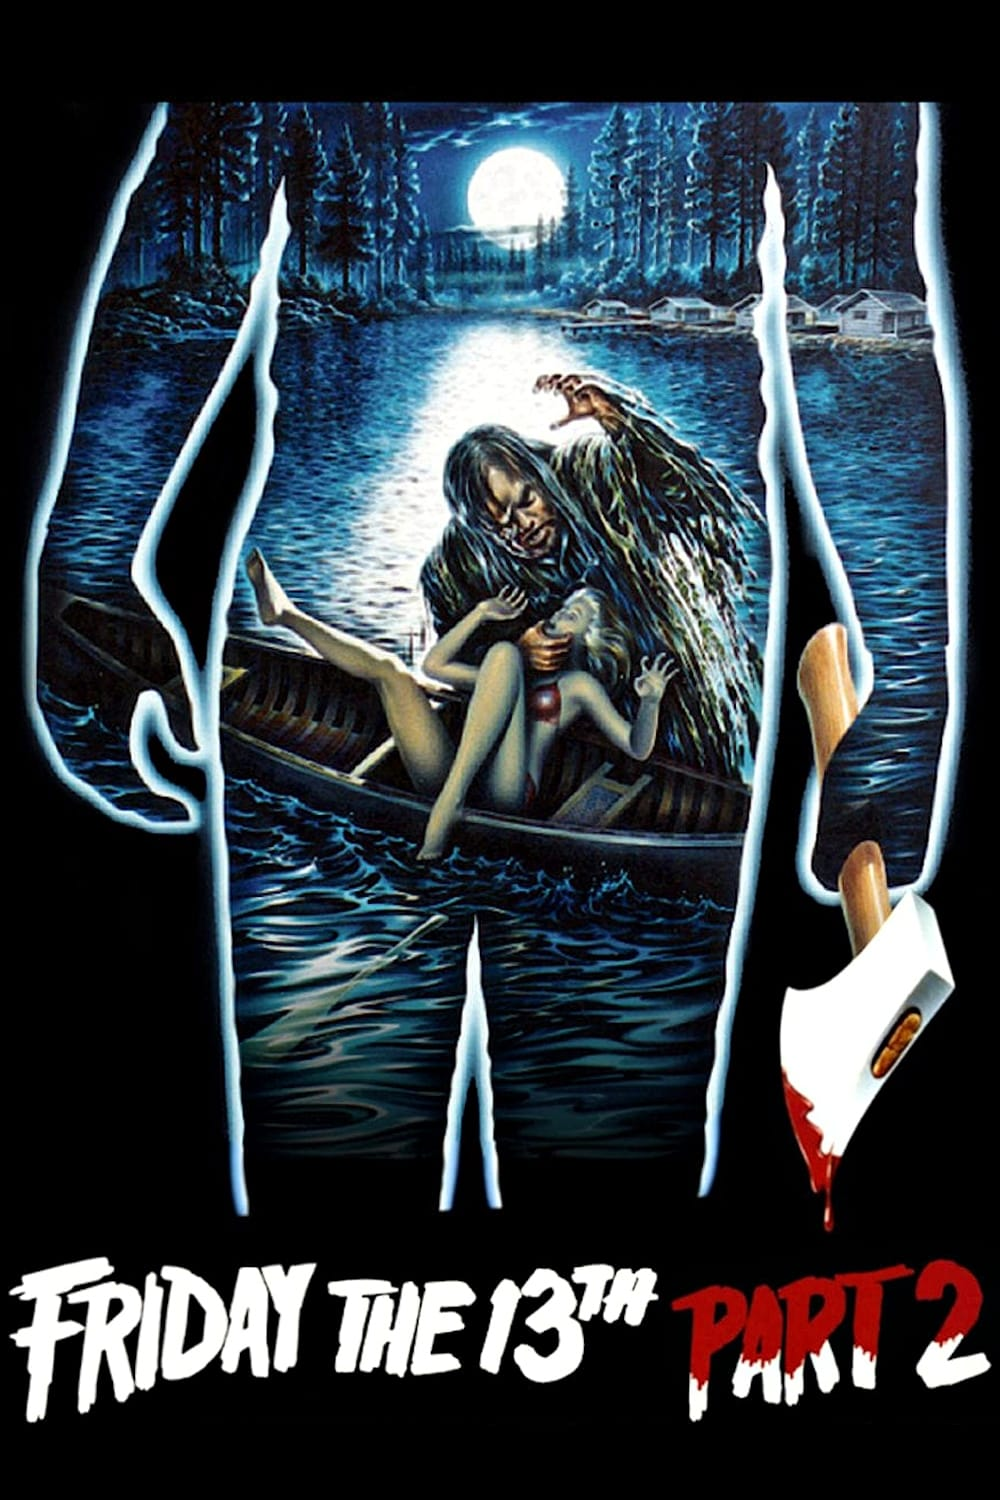 friday the 13th part 2 1981 posters � the movie